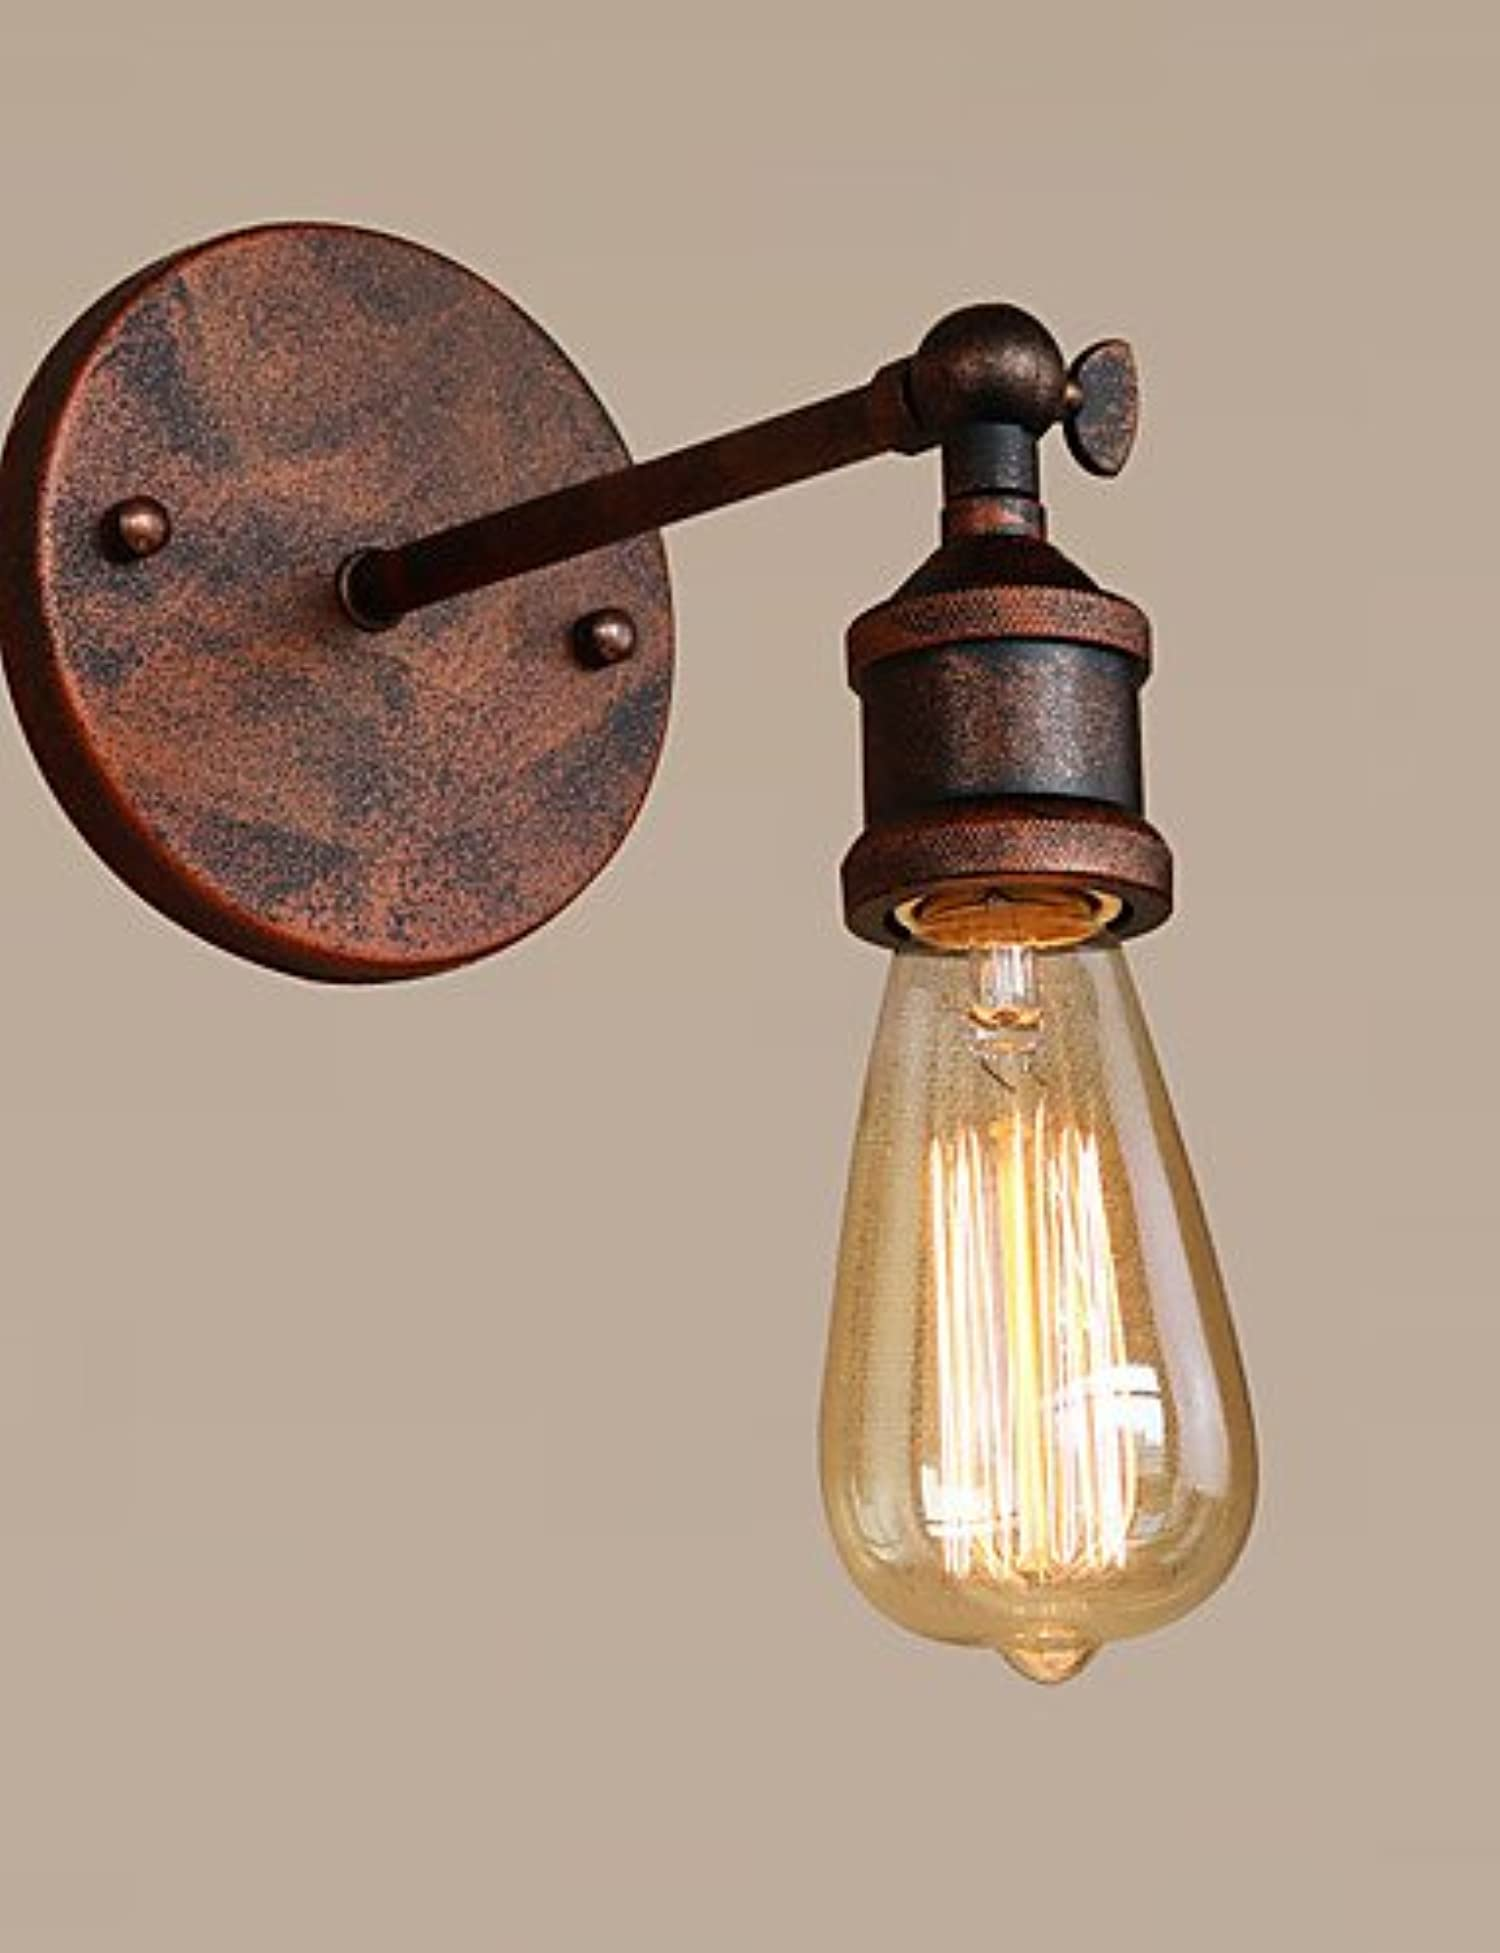 Industrial Style Wall Mounted Lights : YUPX Wall Light Wall Mount Light Retro Industrial Style Country Metal Wall Lights Restaurant ...